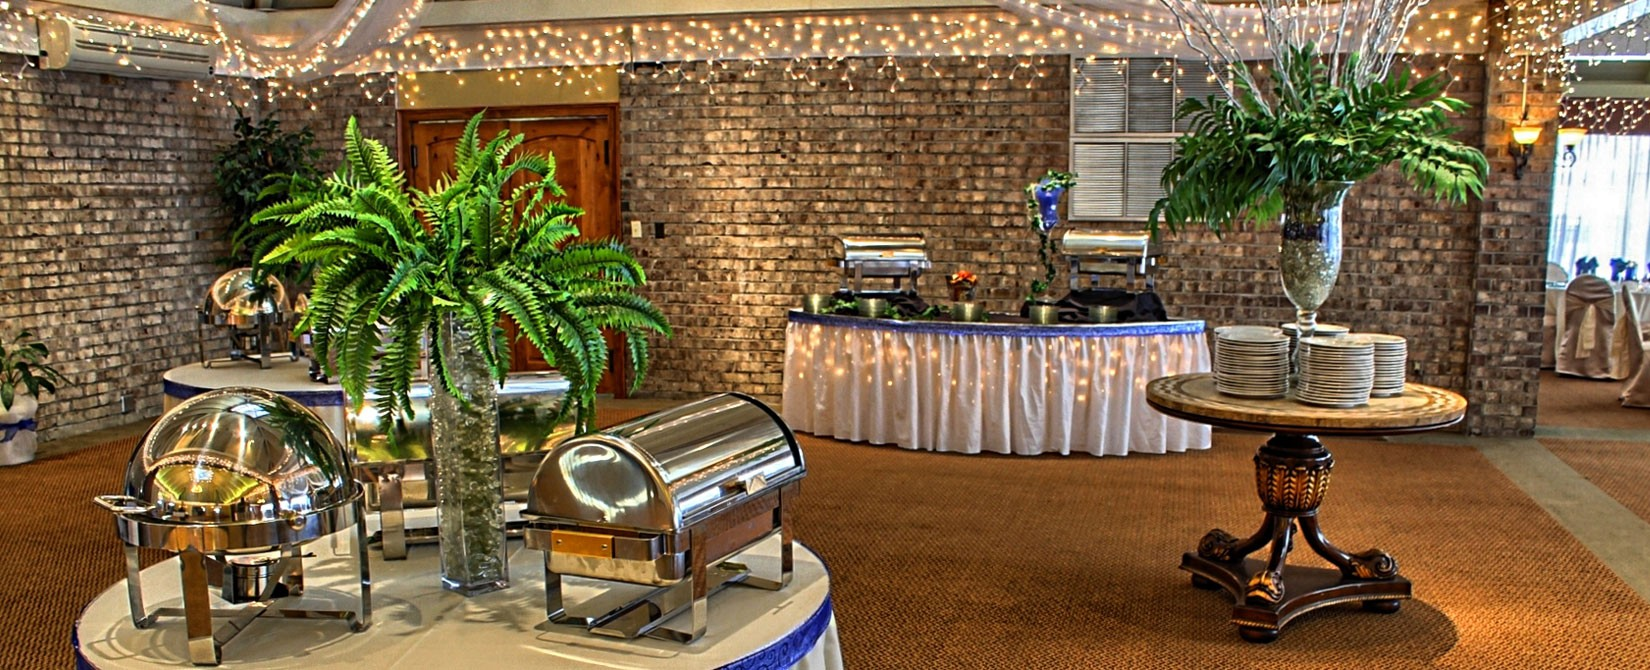 Banquet room at Caravelle Resort set up with plates and silver chafing dishes